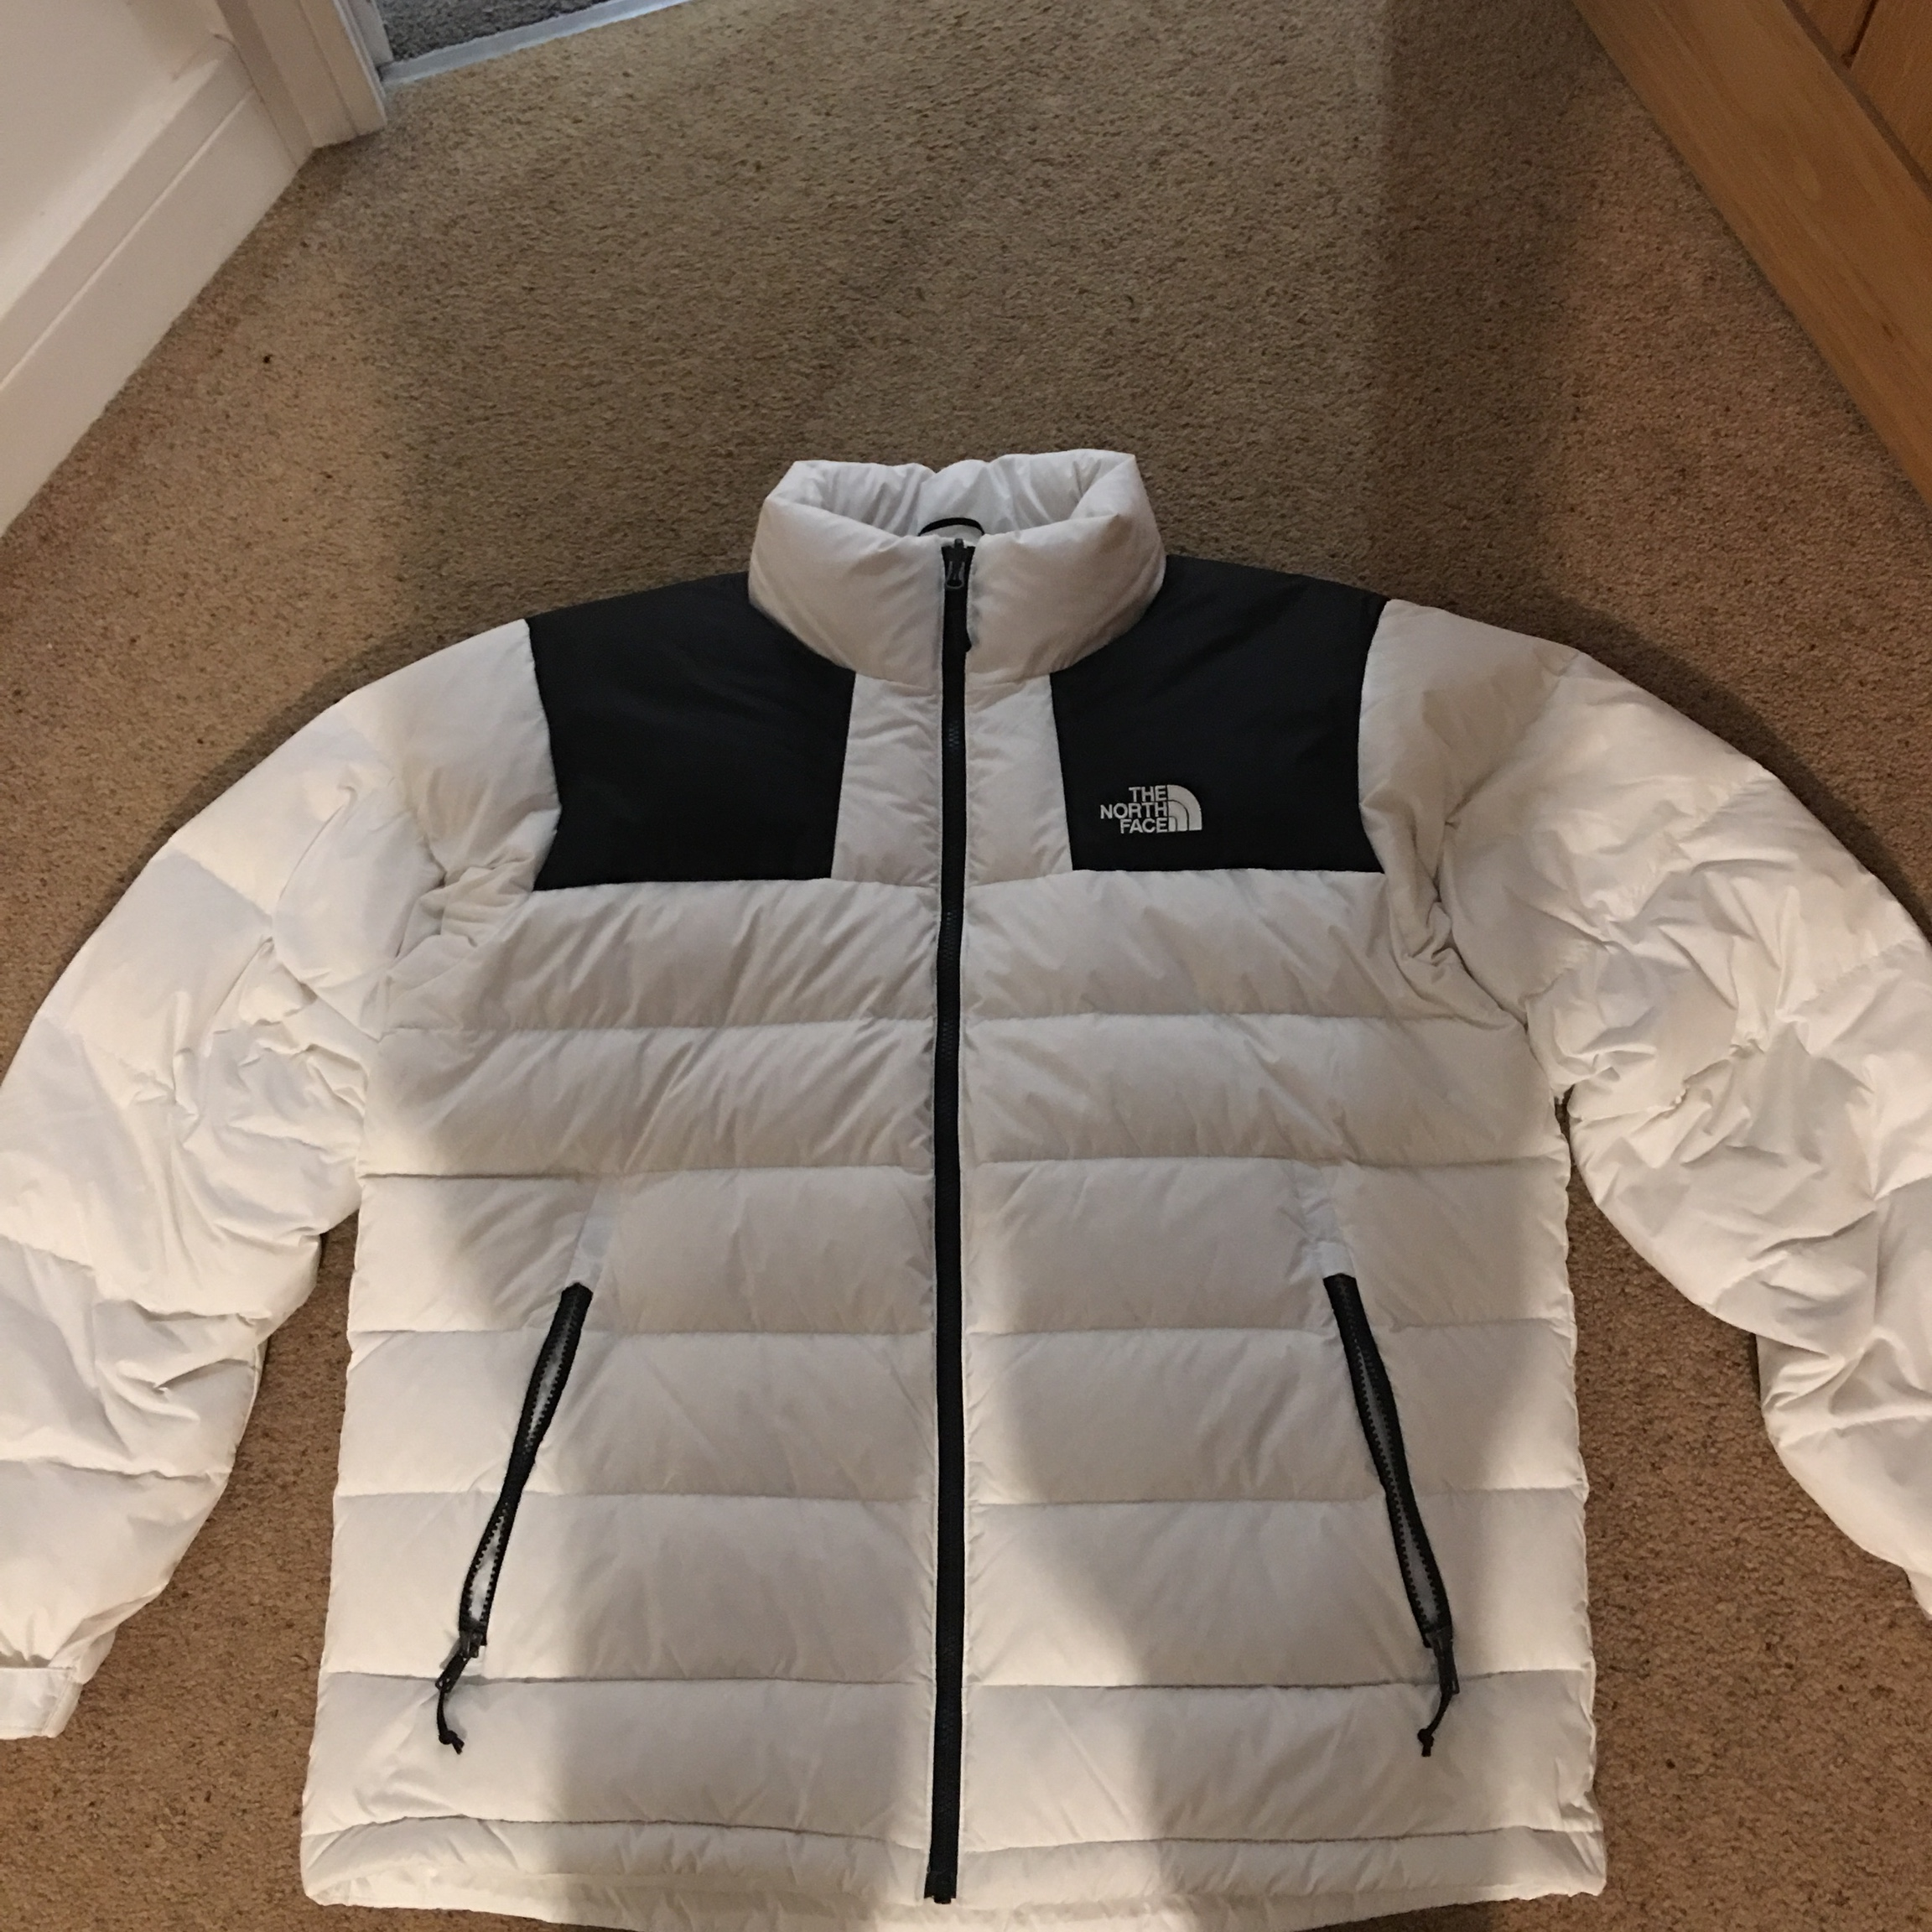 8c2215886 The North Face white Nuptse puffer jacket 700 down... - Depop